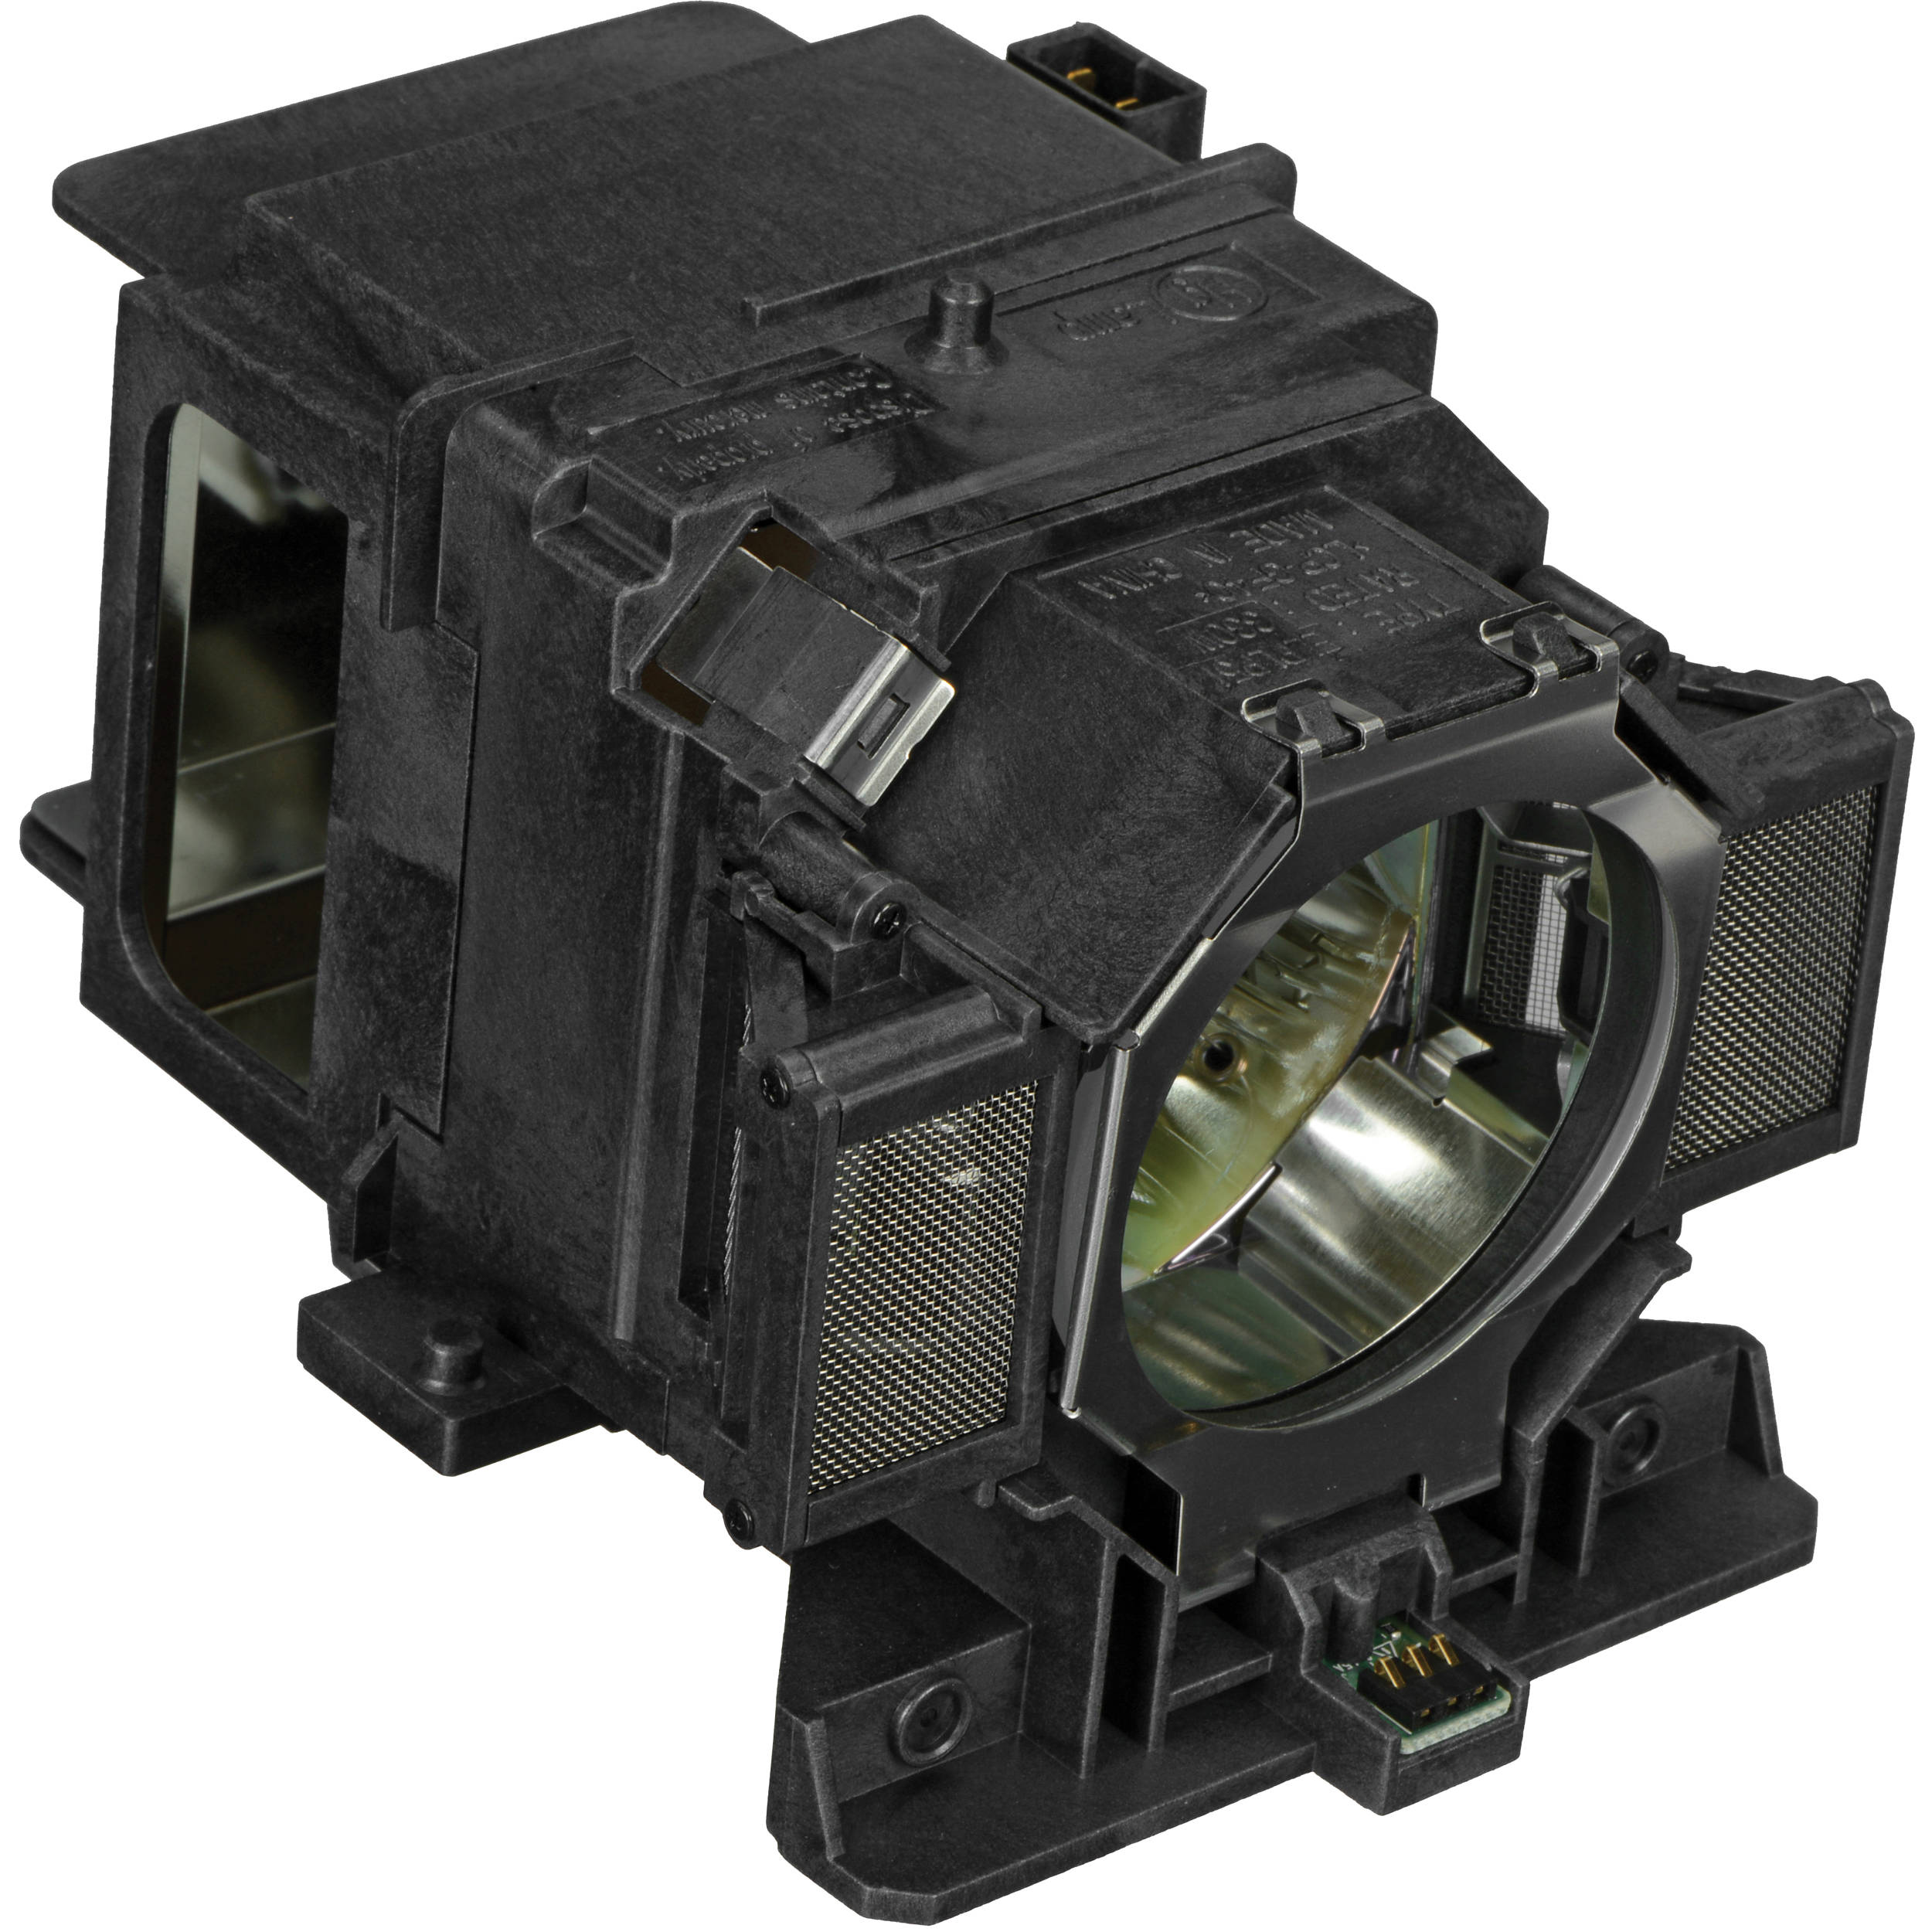 Epson ELPLP52 Dual Replacement Projector Lamp Kit V13H010L52 B&H